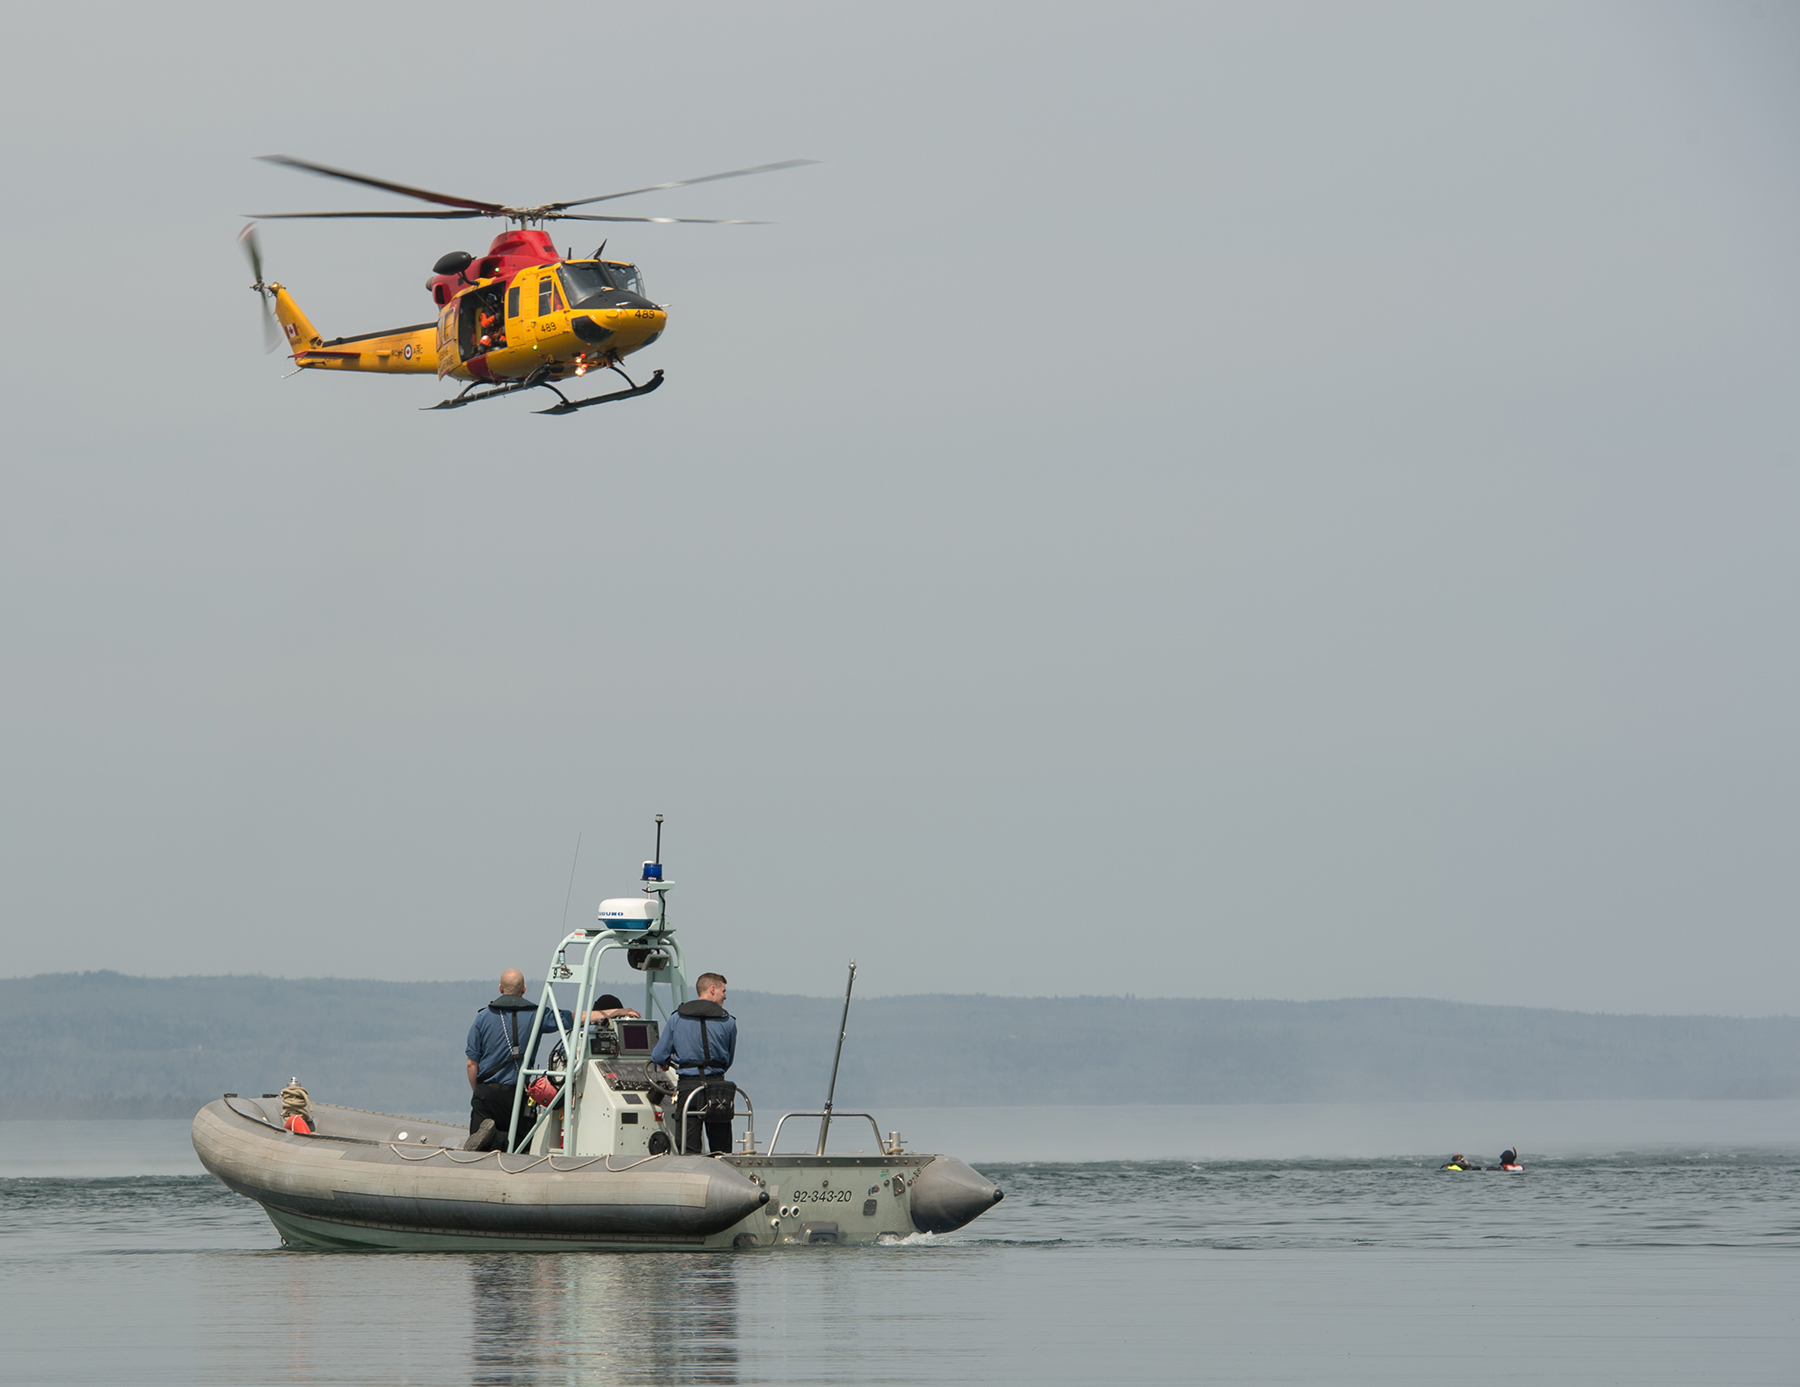 During Chinthex 18, a CH-146 Griffon helicopter from 439 Combat Support Squadron approaches people in the water near a rigid-hulled inflatable boat and crew from Naval Reserve unit HMCS Griffon. PHOTO: Corporal Bryce Cooper, WG2018-0229-004